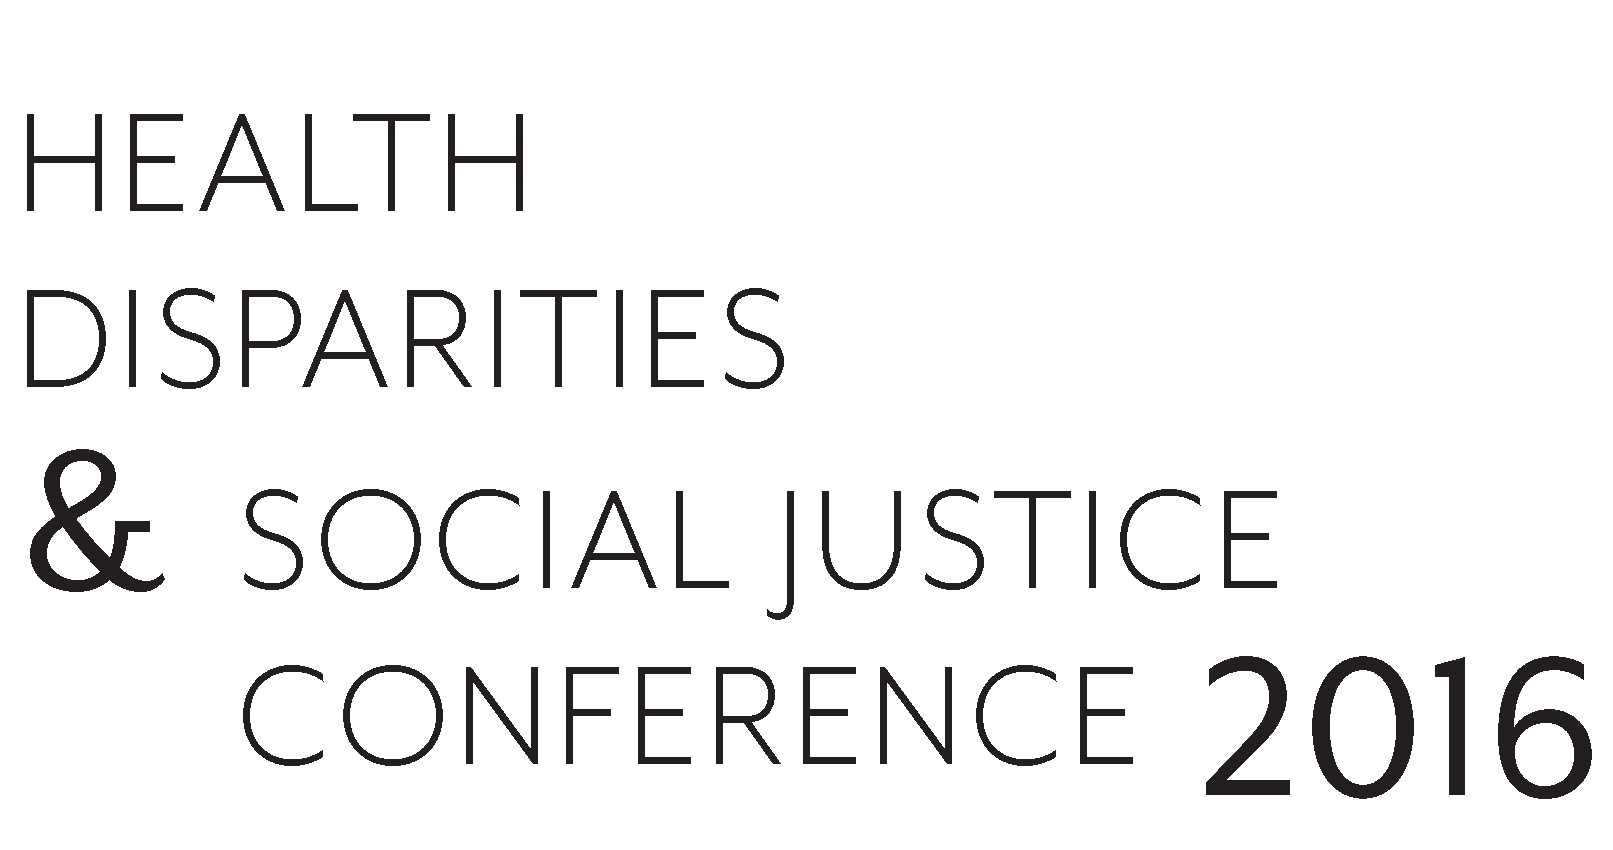 Health Disparities & Social Justice Conference 2016